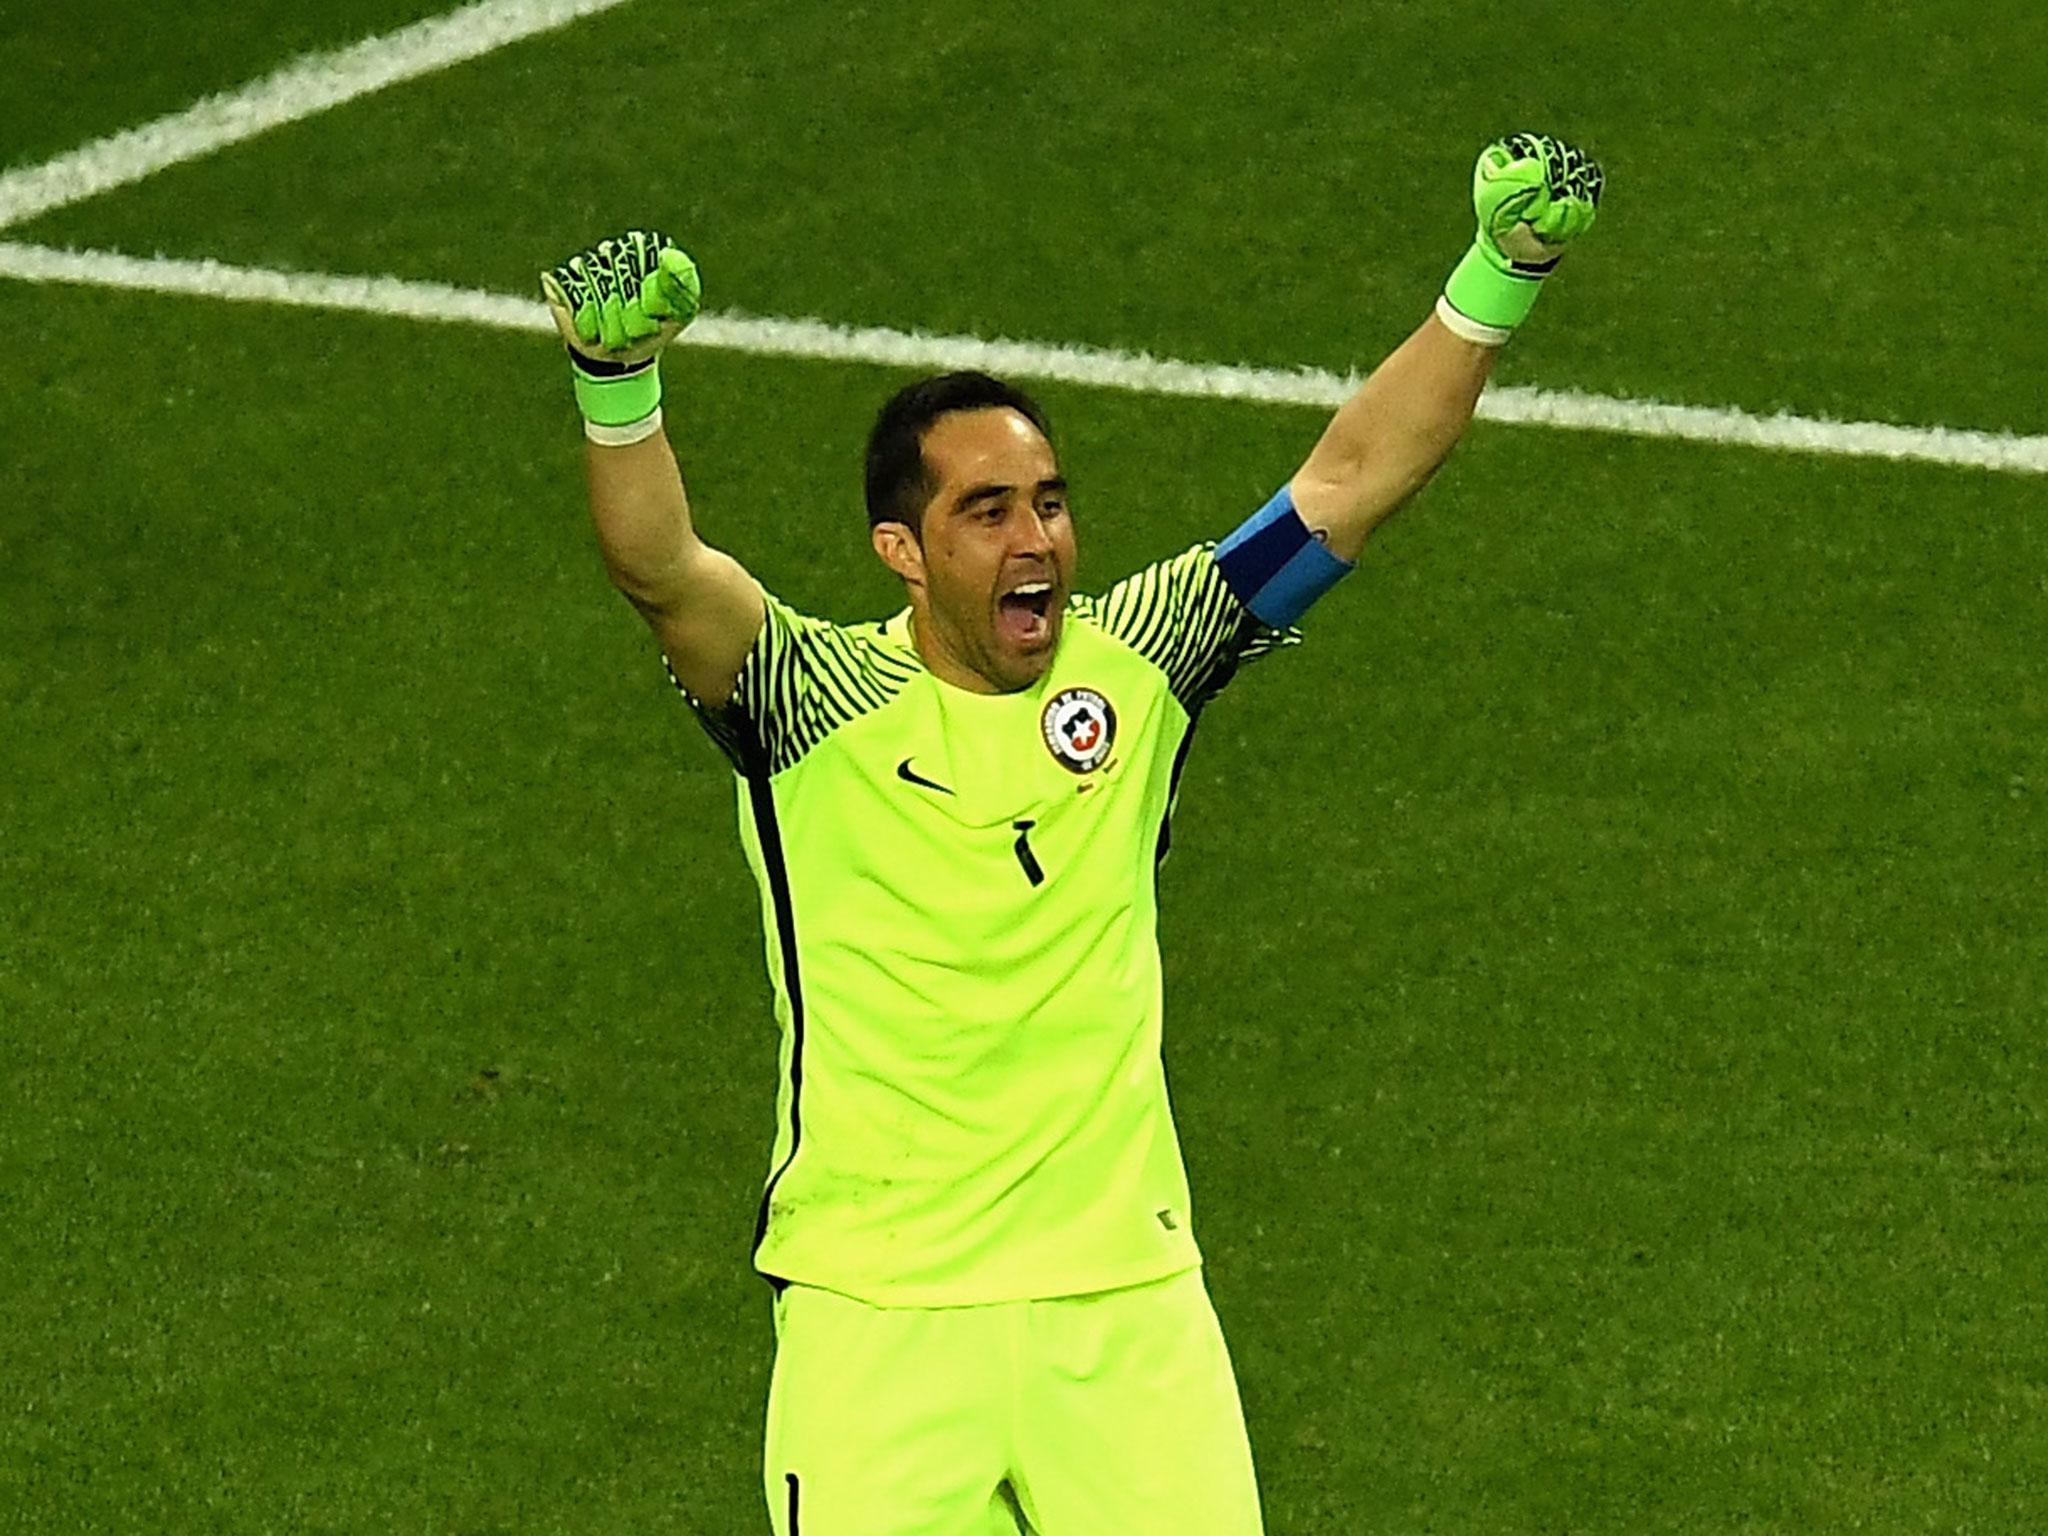 Claudio Bravo made as many saves in Chile's penalty shootout win over Portugal as he did for Man City in 2017